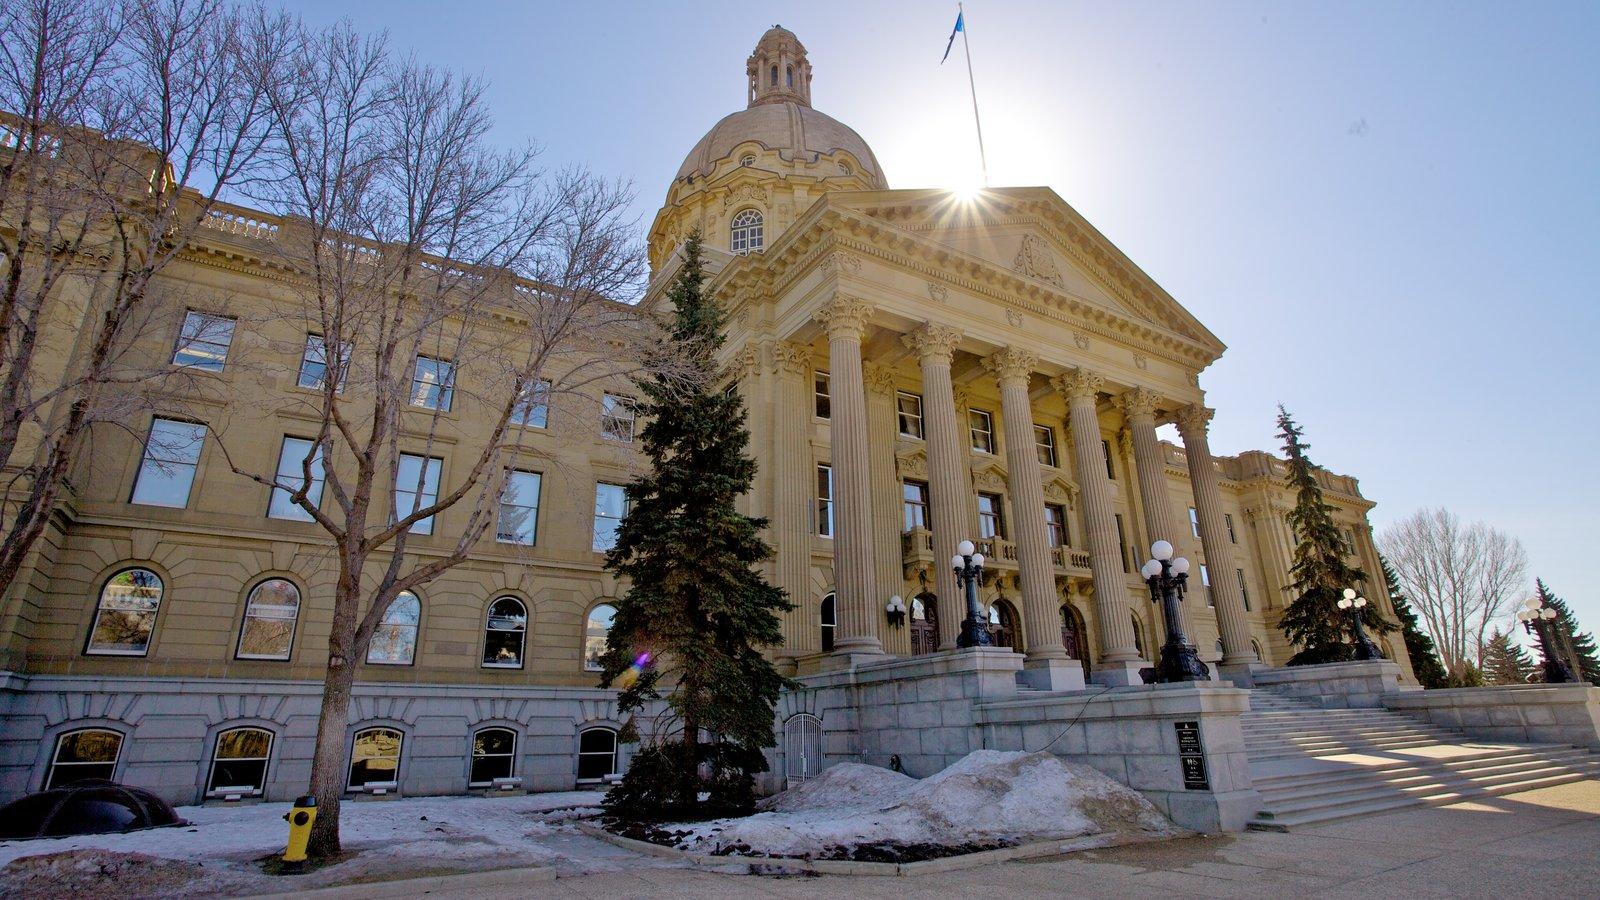 Alberta Legislature Building featuring an administrative building and heritage architecture